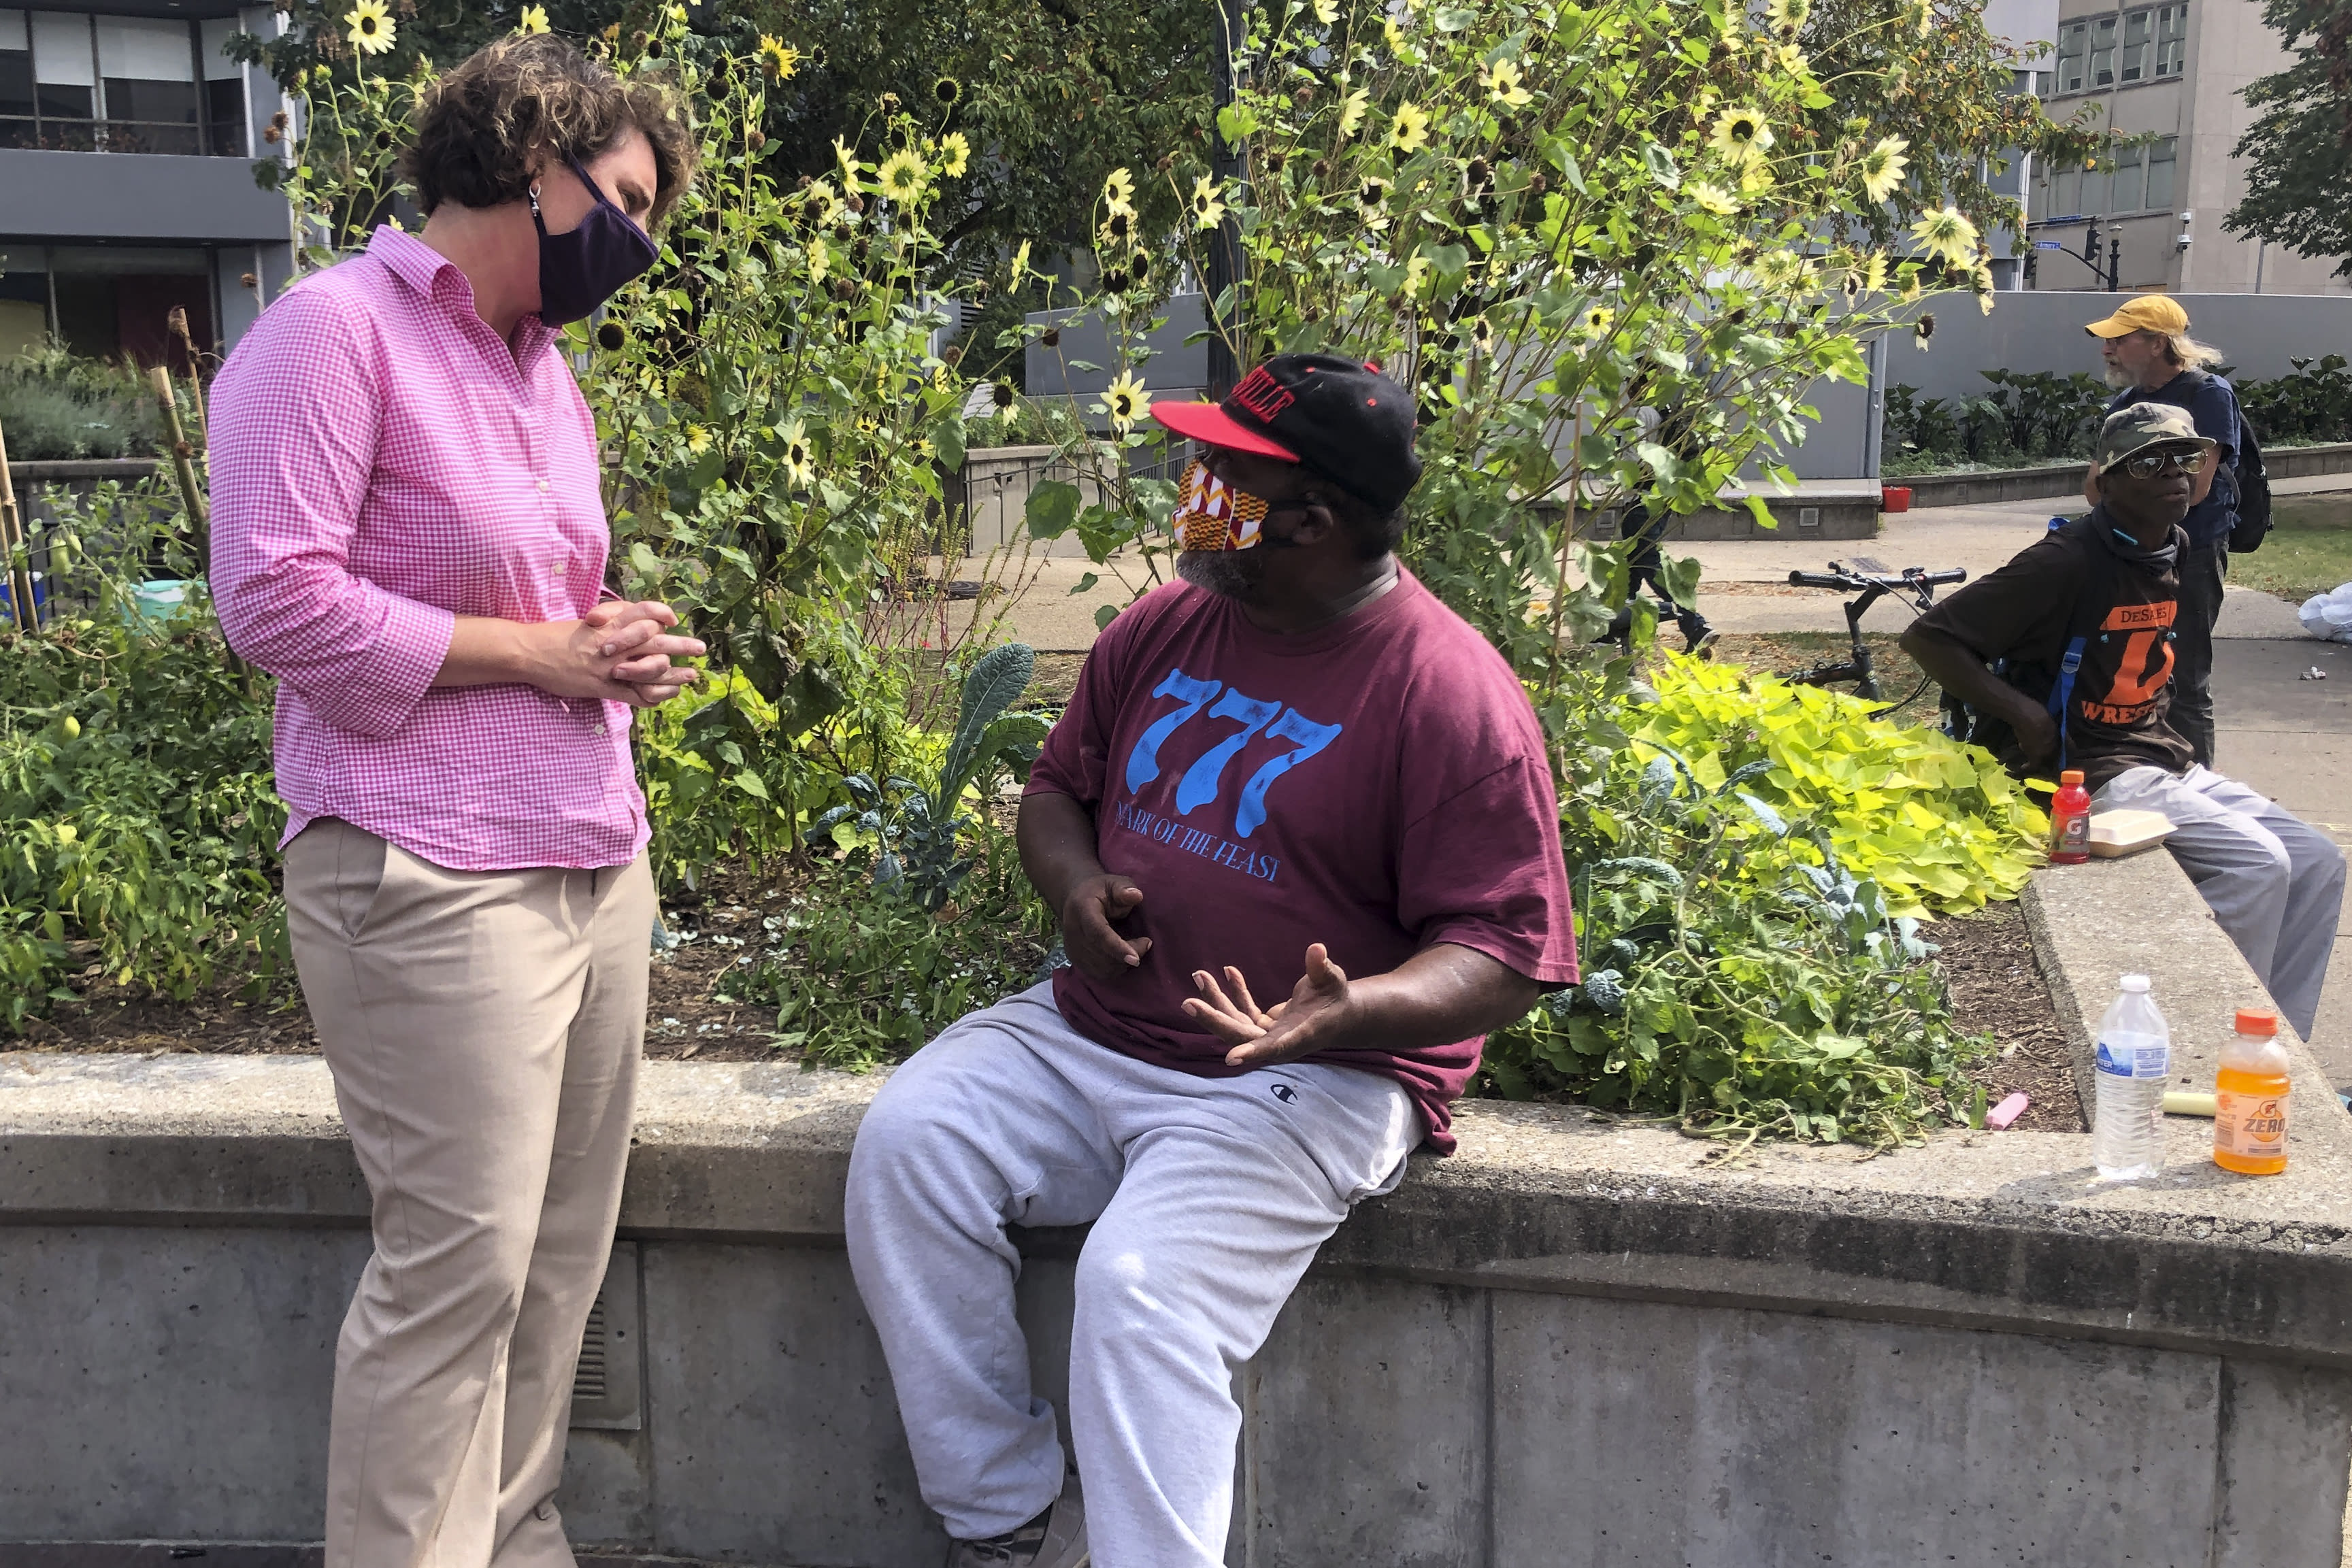 """Kentucky U.S. Senate candidate Democrat Amy McGrath, speaks to a man in Jefferson Square, Thursday, Sept. 24, 2020, in Louisville, Ky. McGrath called for fundamental change to combat """"systemic racism"""" as the Senate candidate met Thursday with some of the Kentucky protesters seething over a grand jury's decision not to charge officers for killing Breonna Taylor. (AP Photo/Claire Galofaro)"""